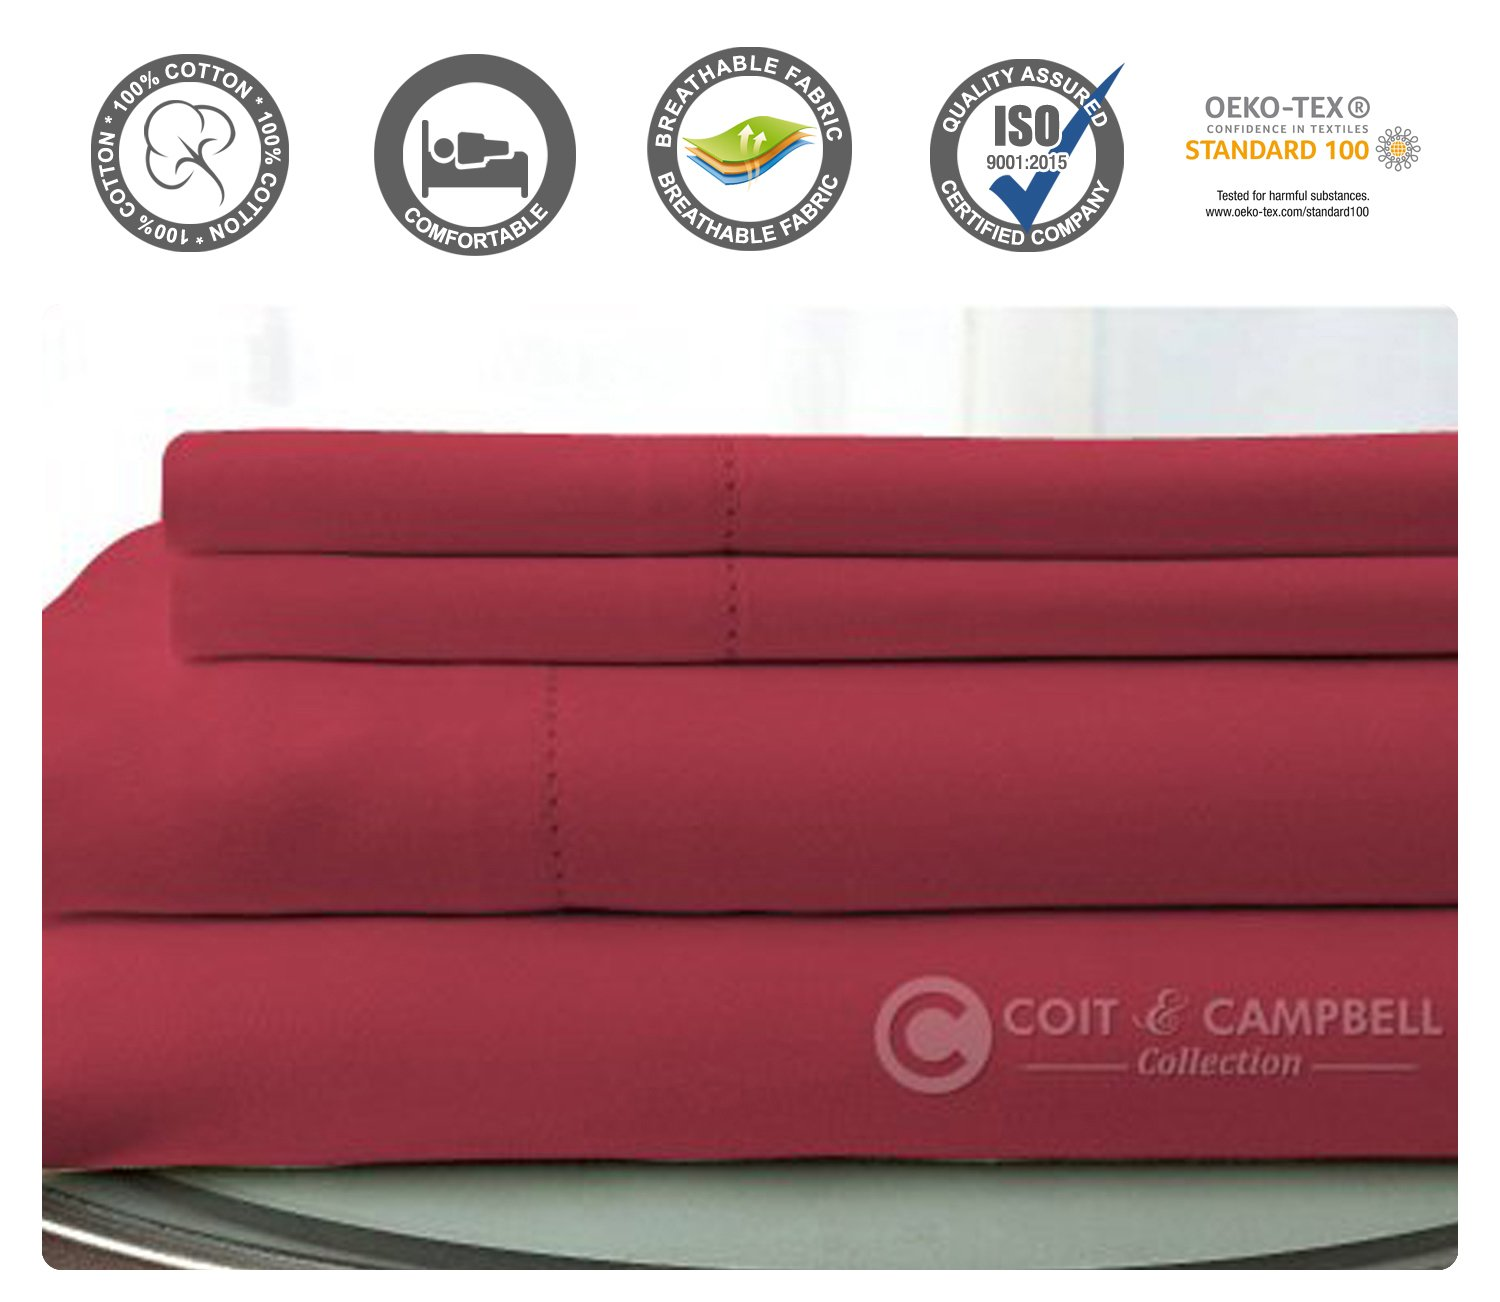 Coit & Campbell Premium Hotel Collection OEKO-TEX Certified Solid 500 Thread Count Deep Pocket 100% Cotton Sateen Sheet Set, Queen Burgundy